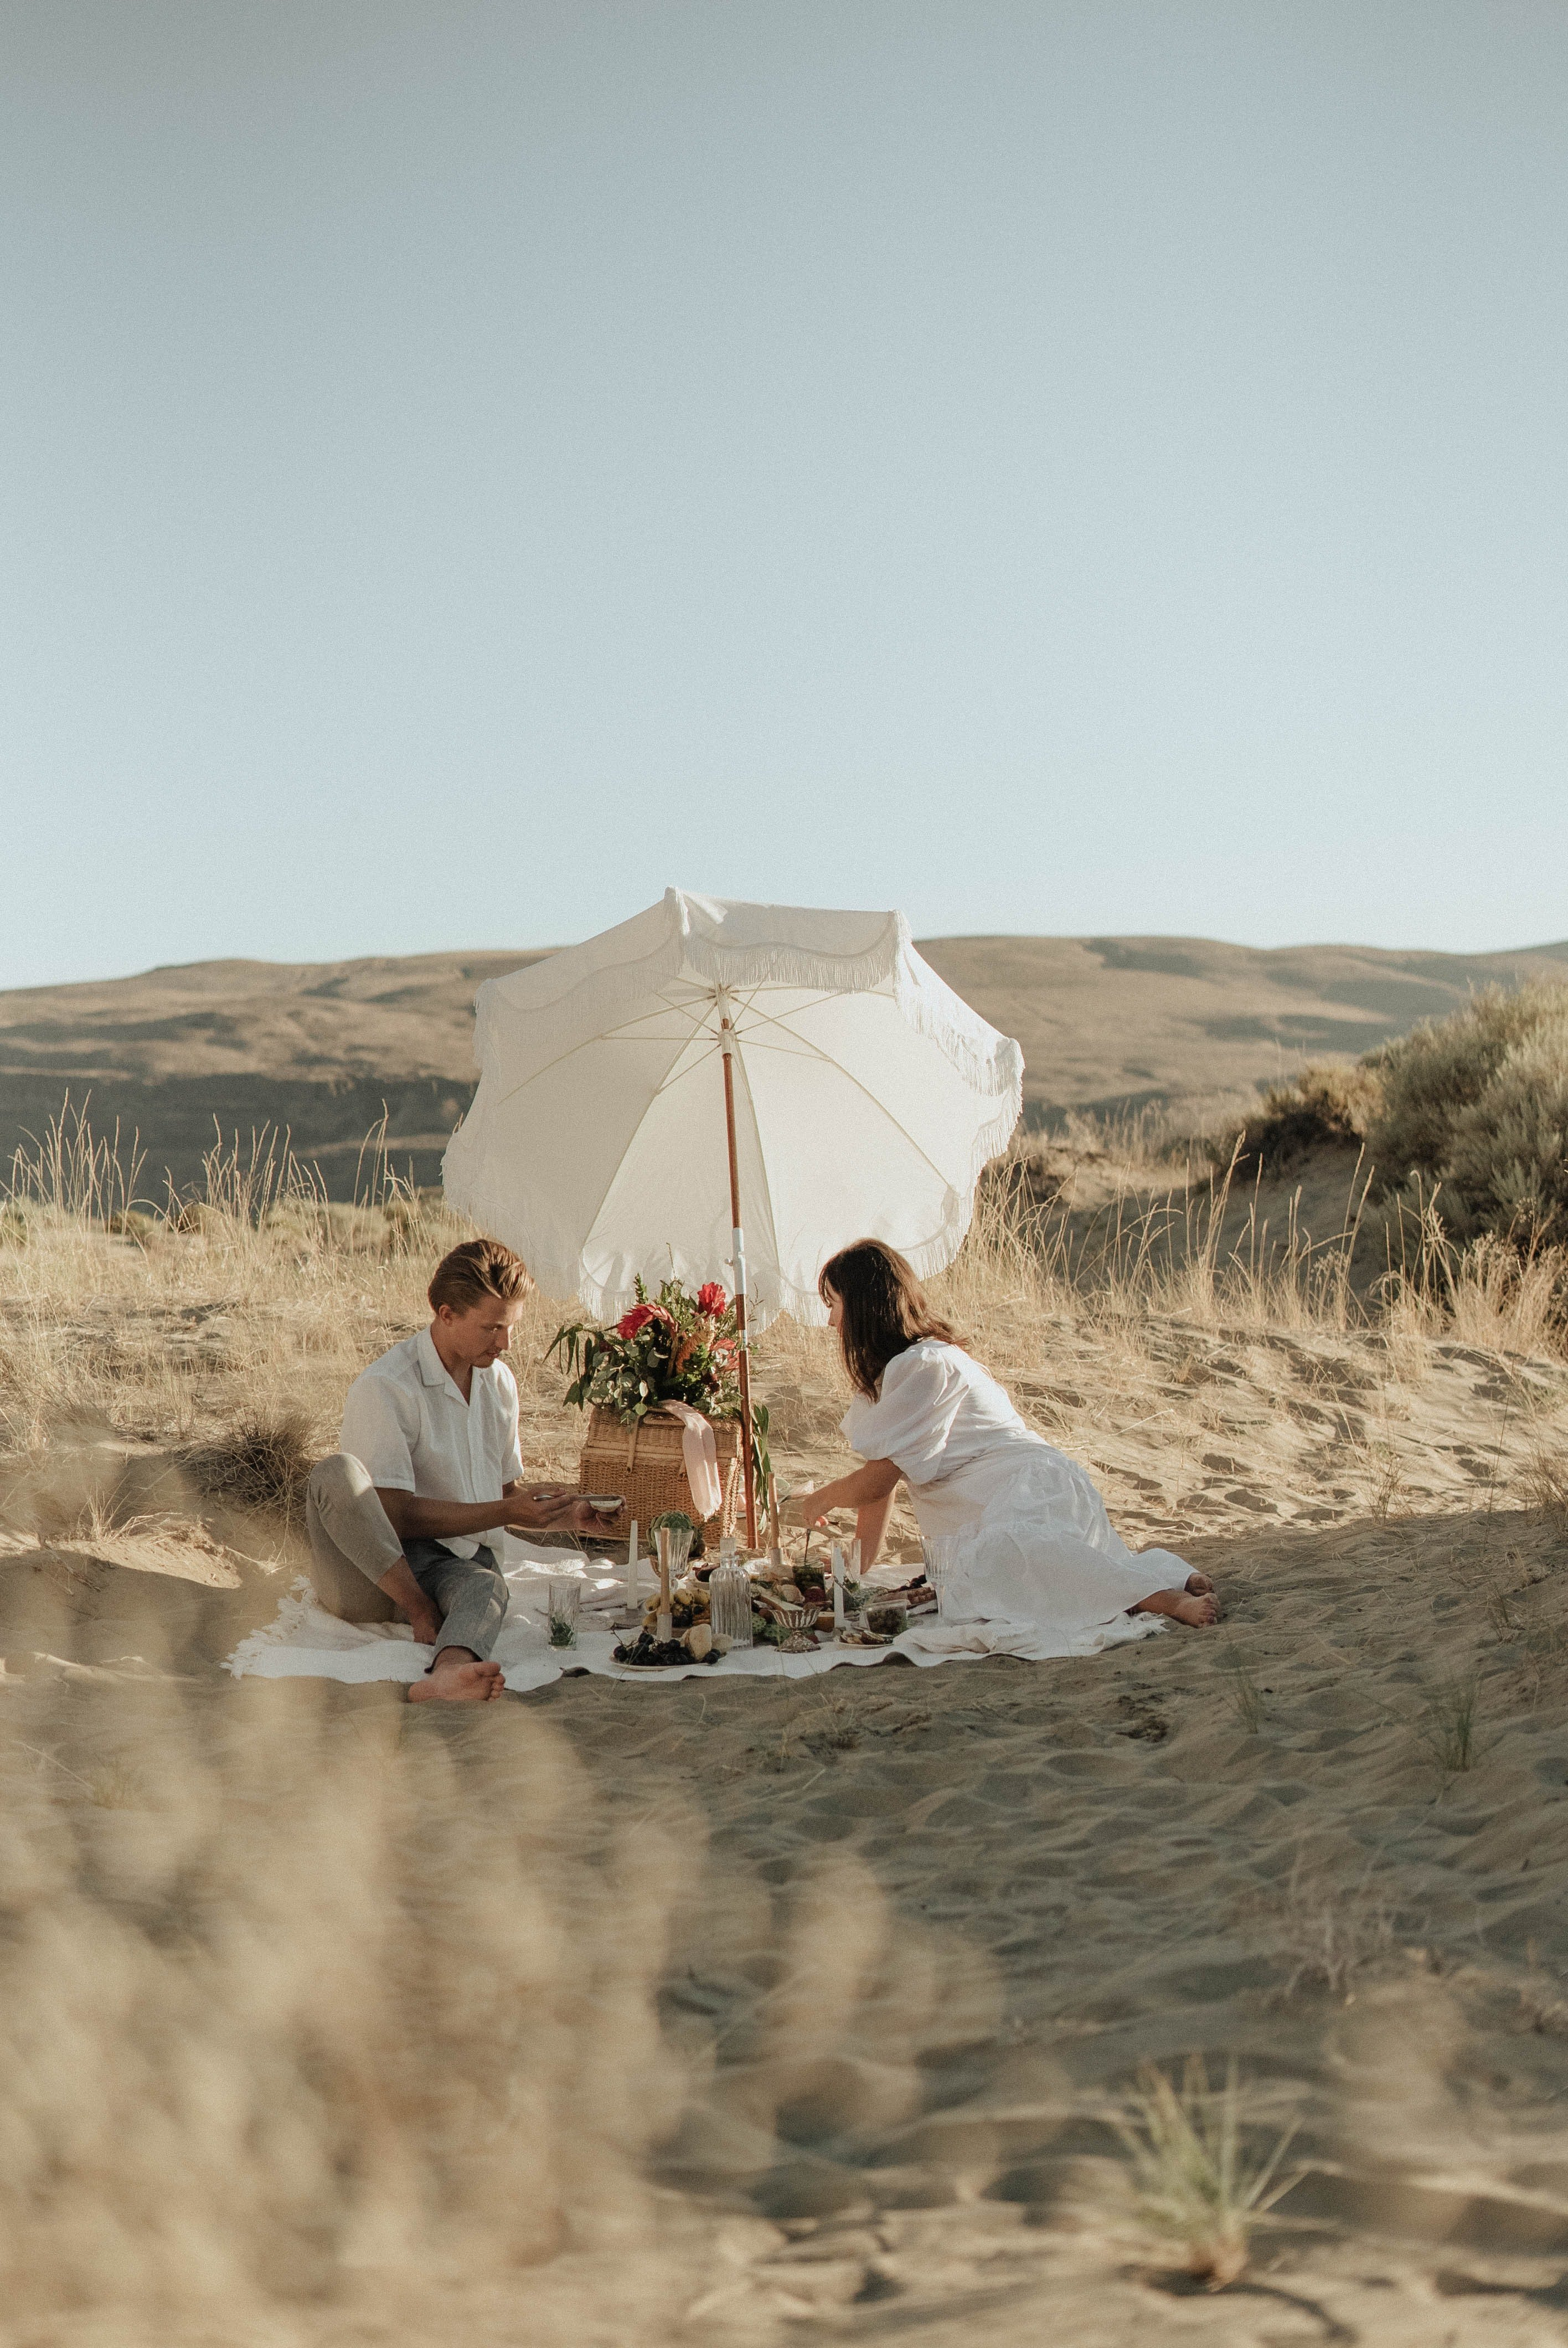 A couple having an outdoor picnic | Source: Pexels